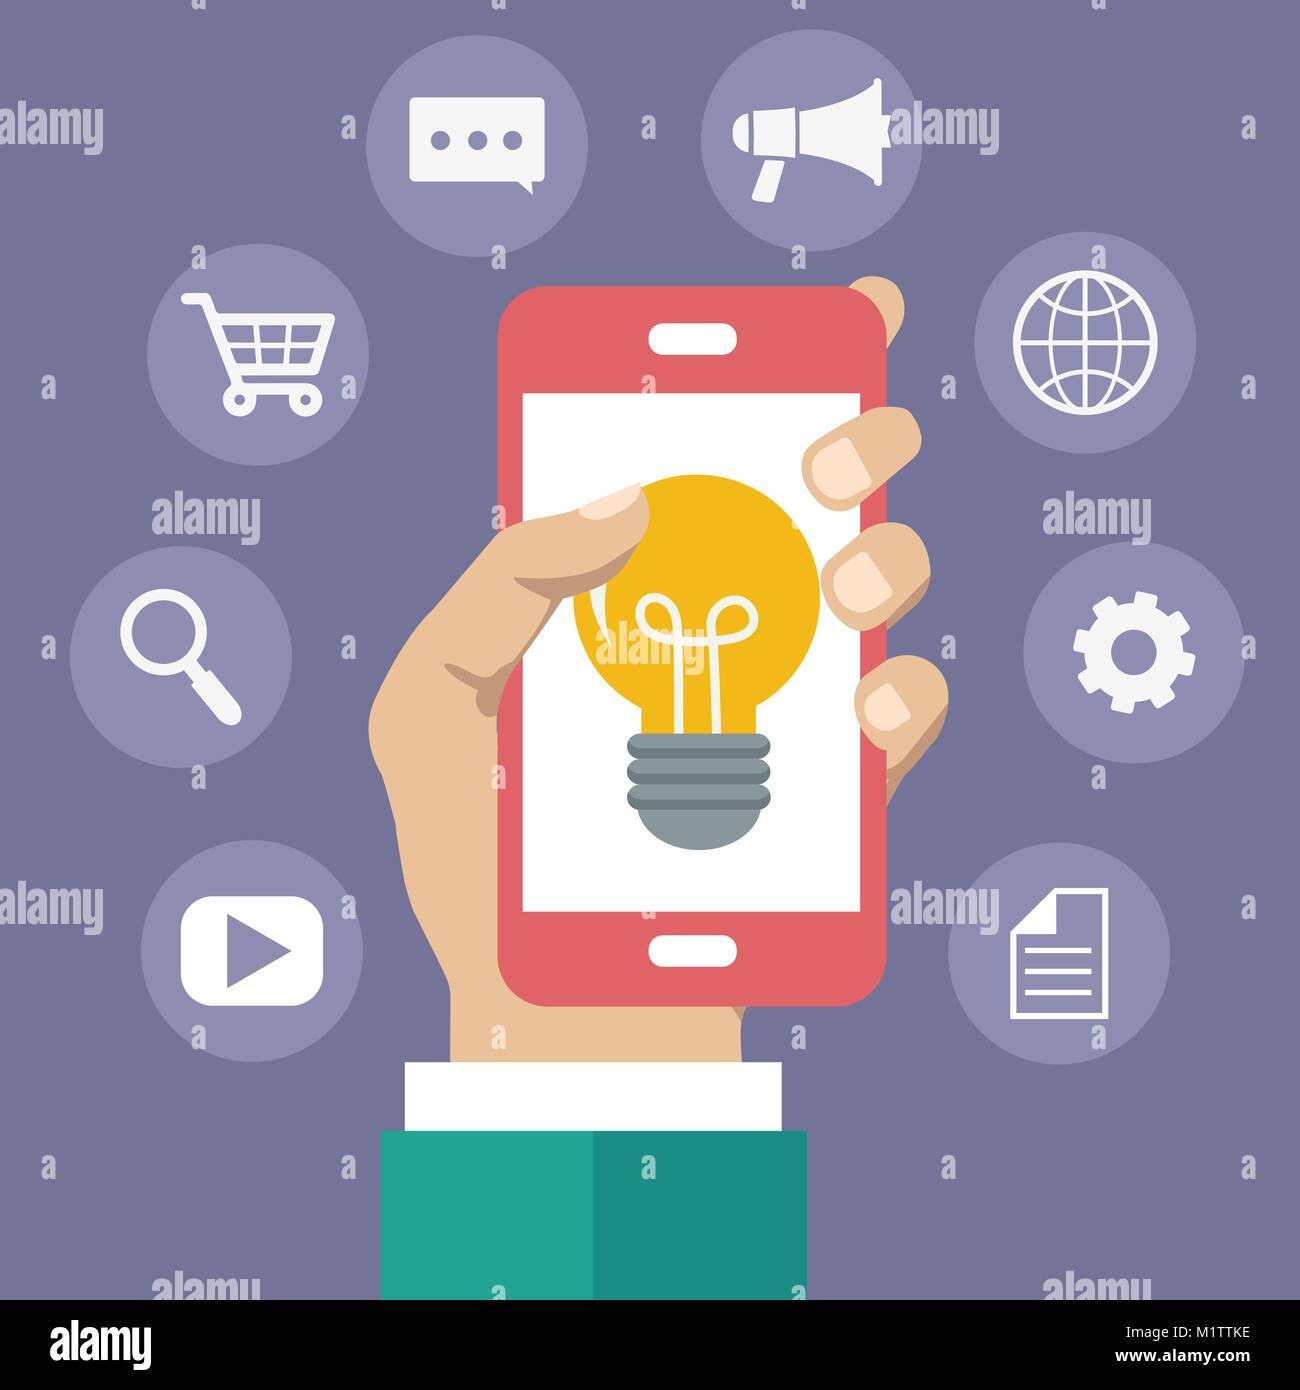 Advertising concept. Marketing service icon. Man holding mobile phone with light bulb on it. Flat vector illustration - Stock Image